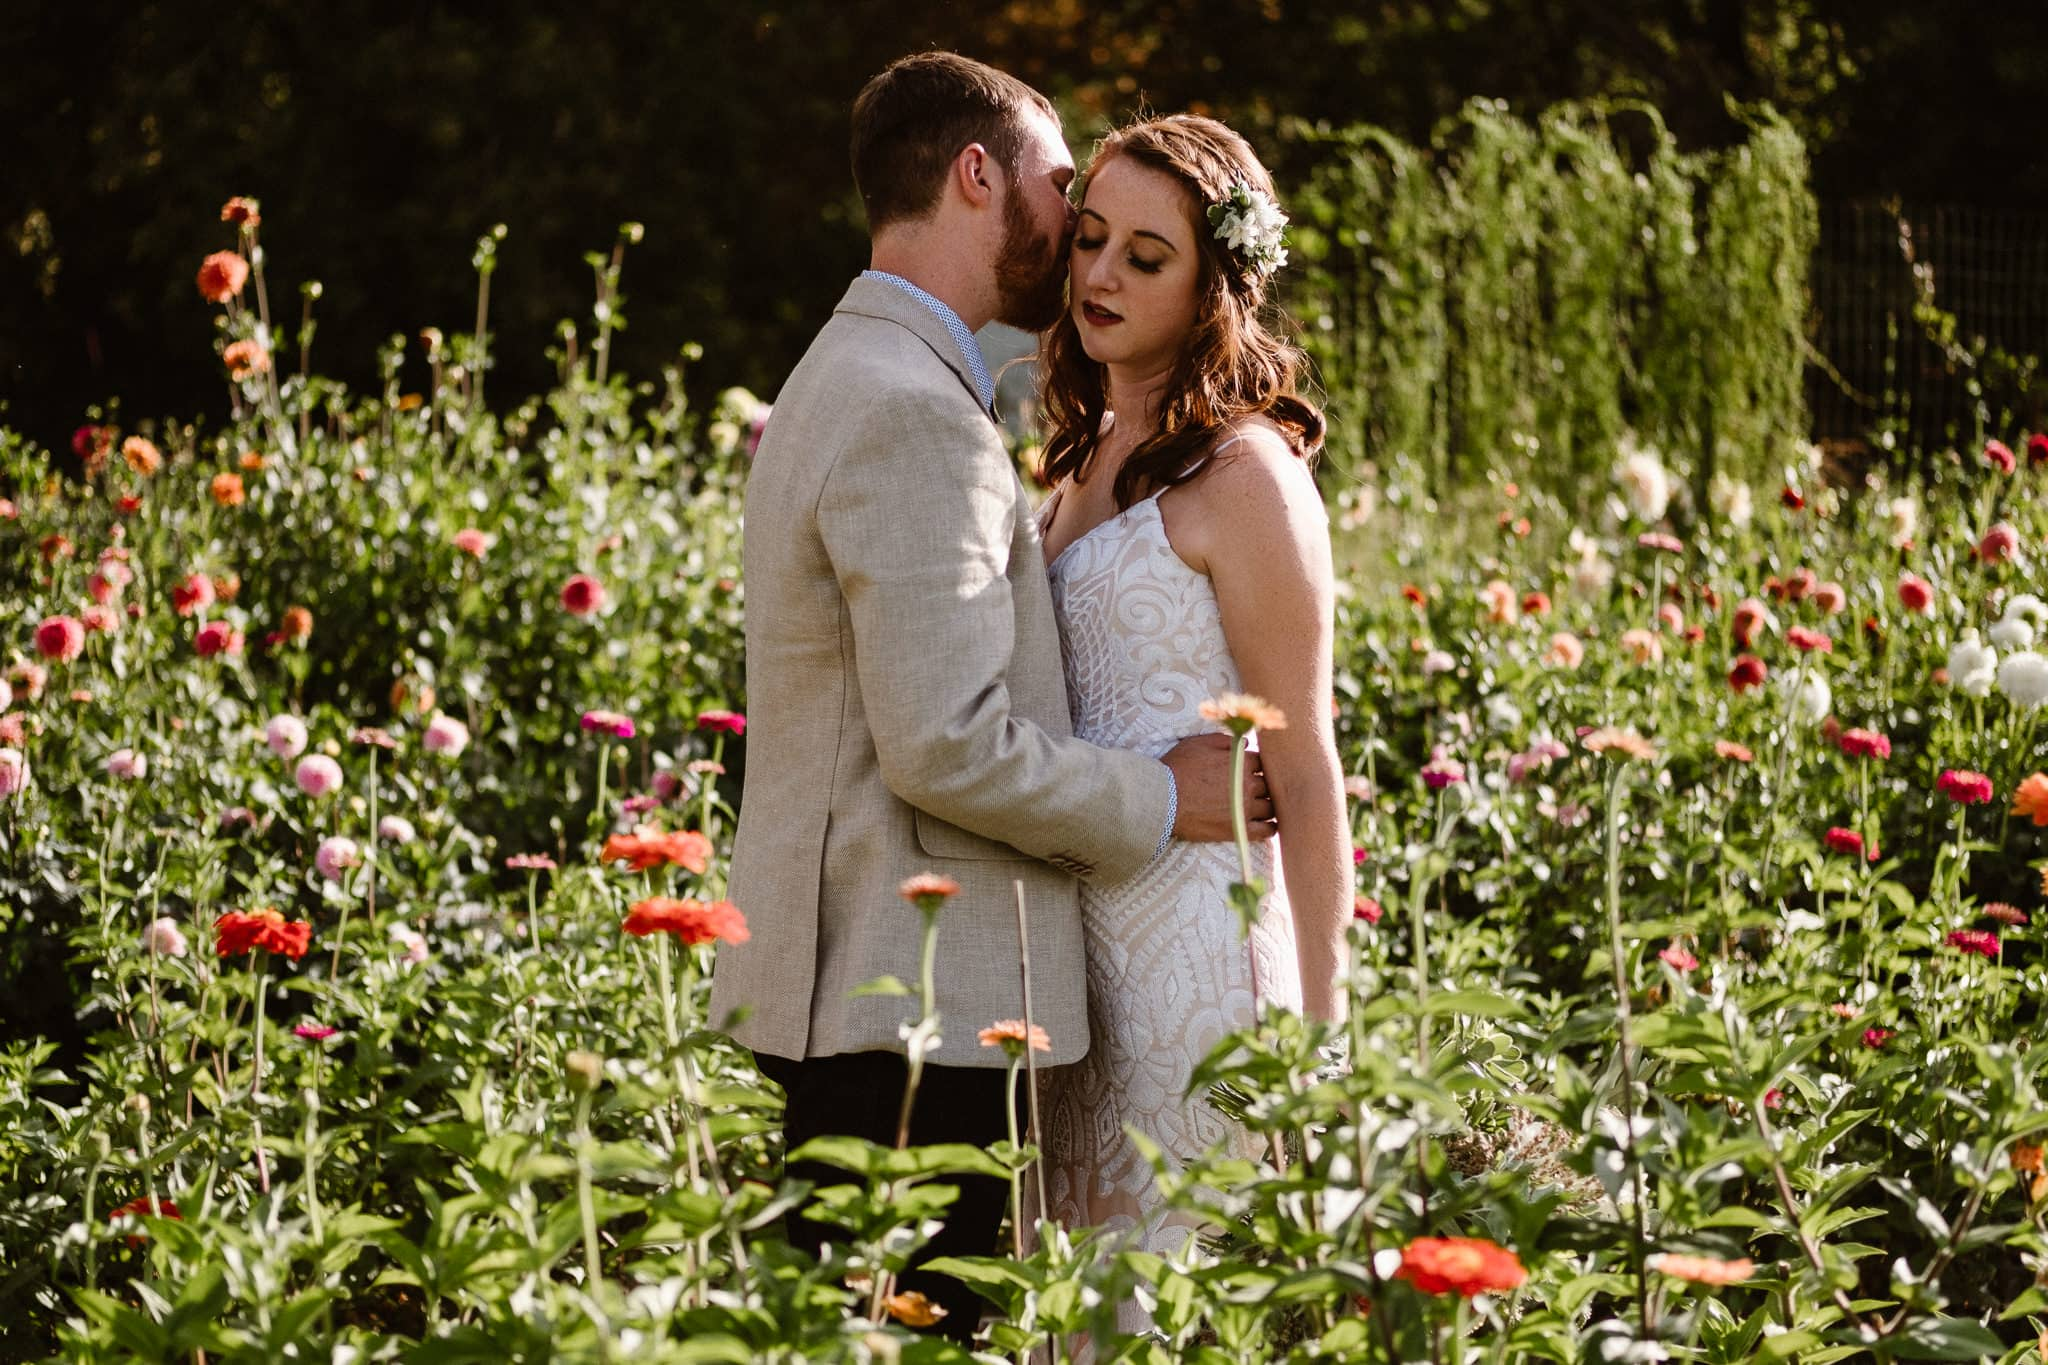 Lyons Farmette wedding photographer, Colorado intimate wedding photographer, bride and groom photos in flower garden